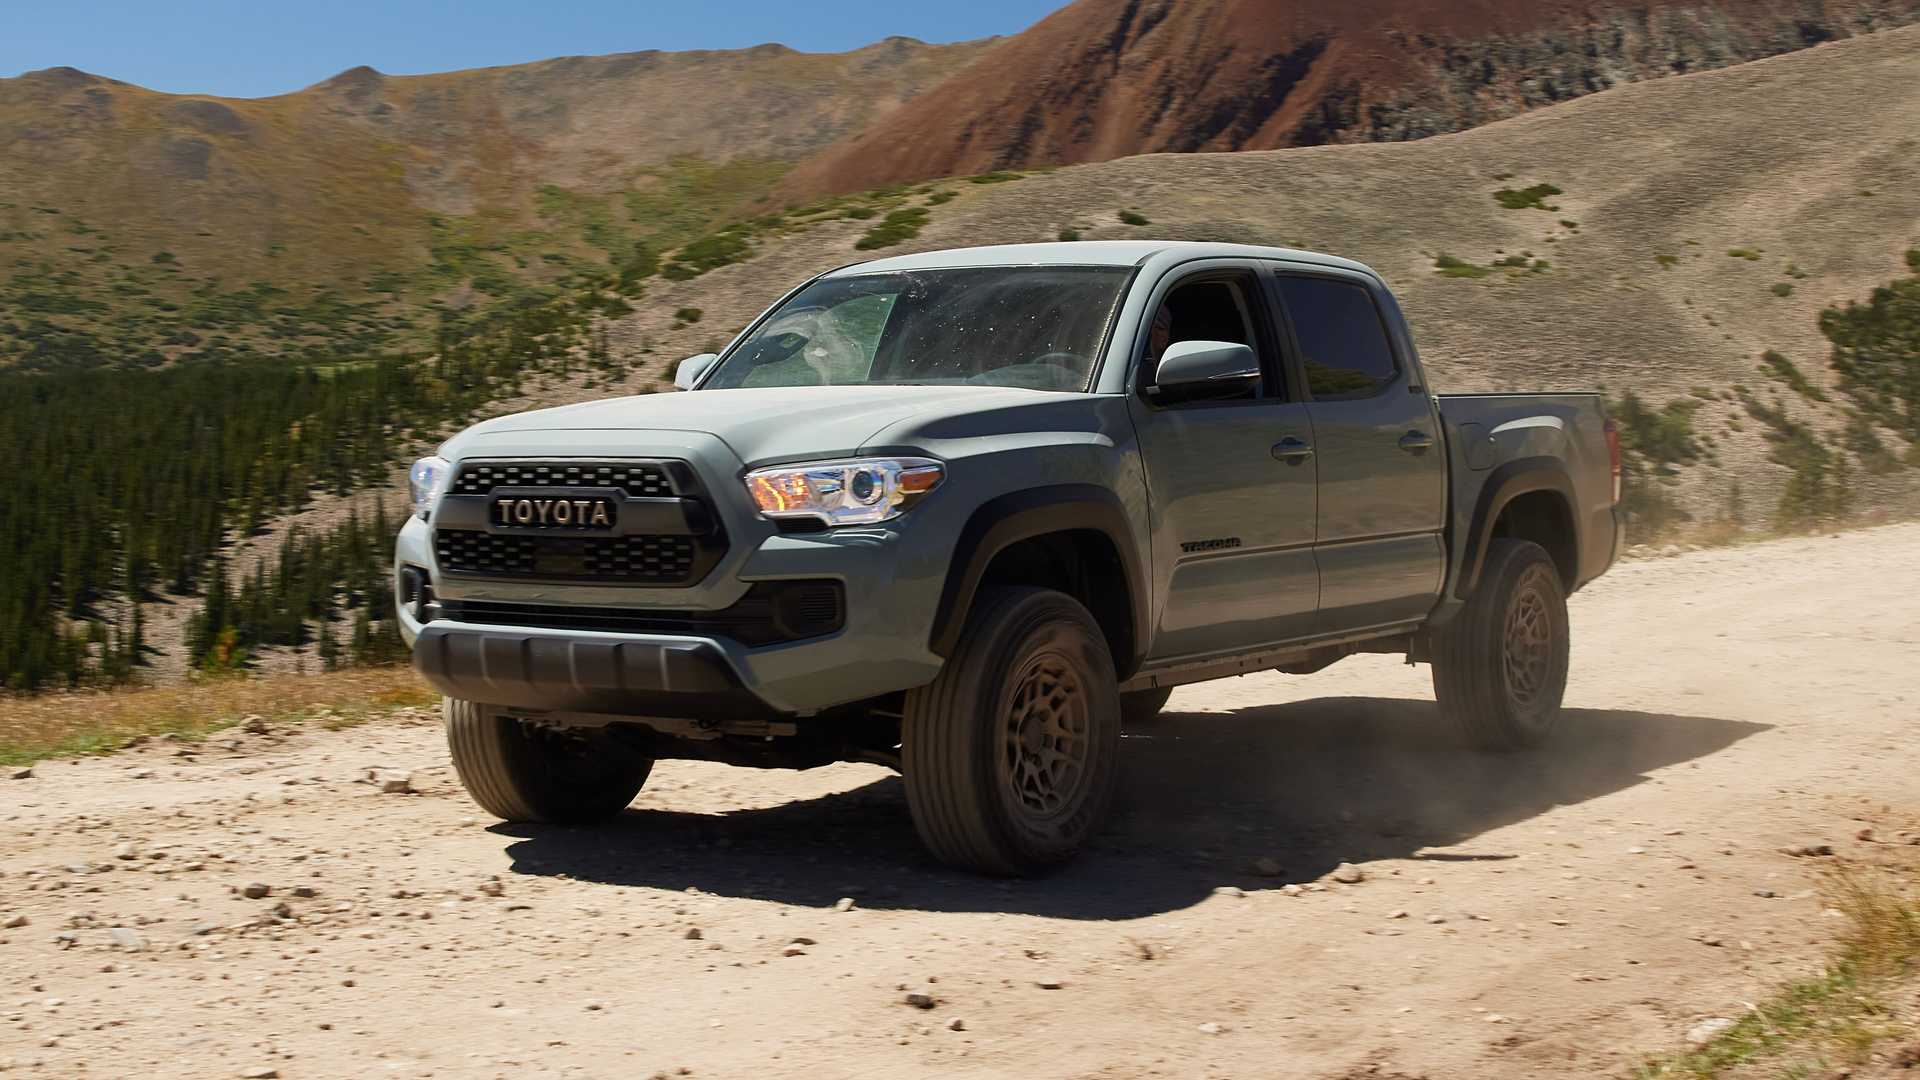 The third generation of the Toyota tundra pickup has just debuted, while the Tacoma model hasn't been updated since 2016. According to MotorTrend, this may change soon.